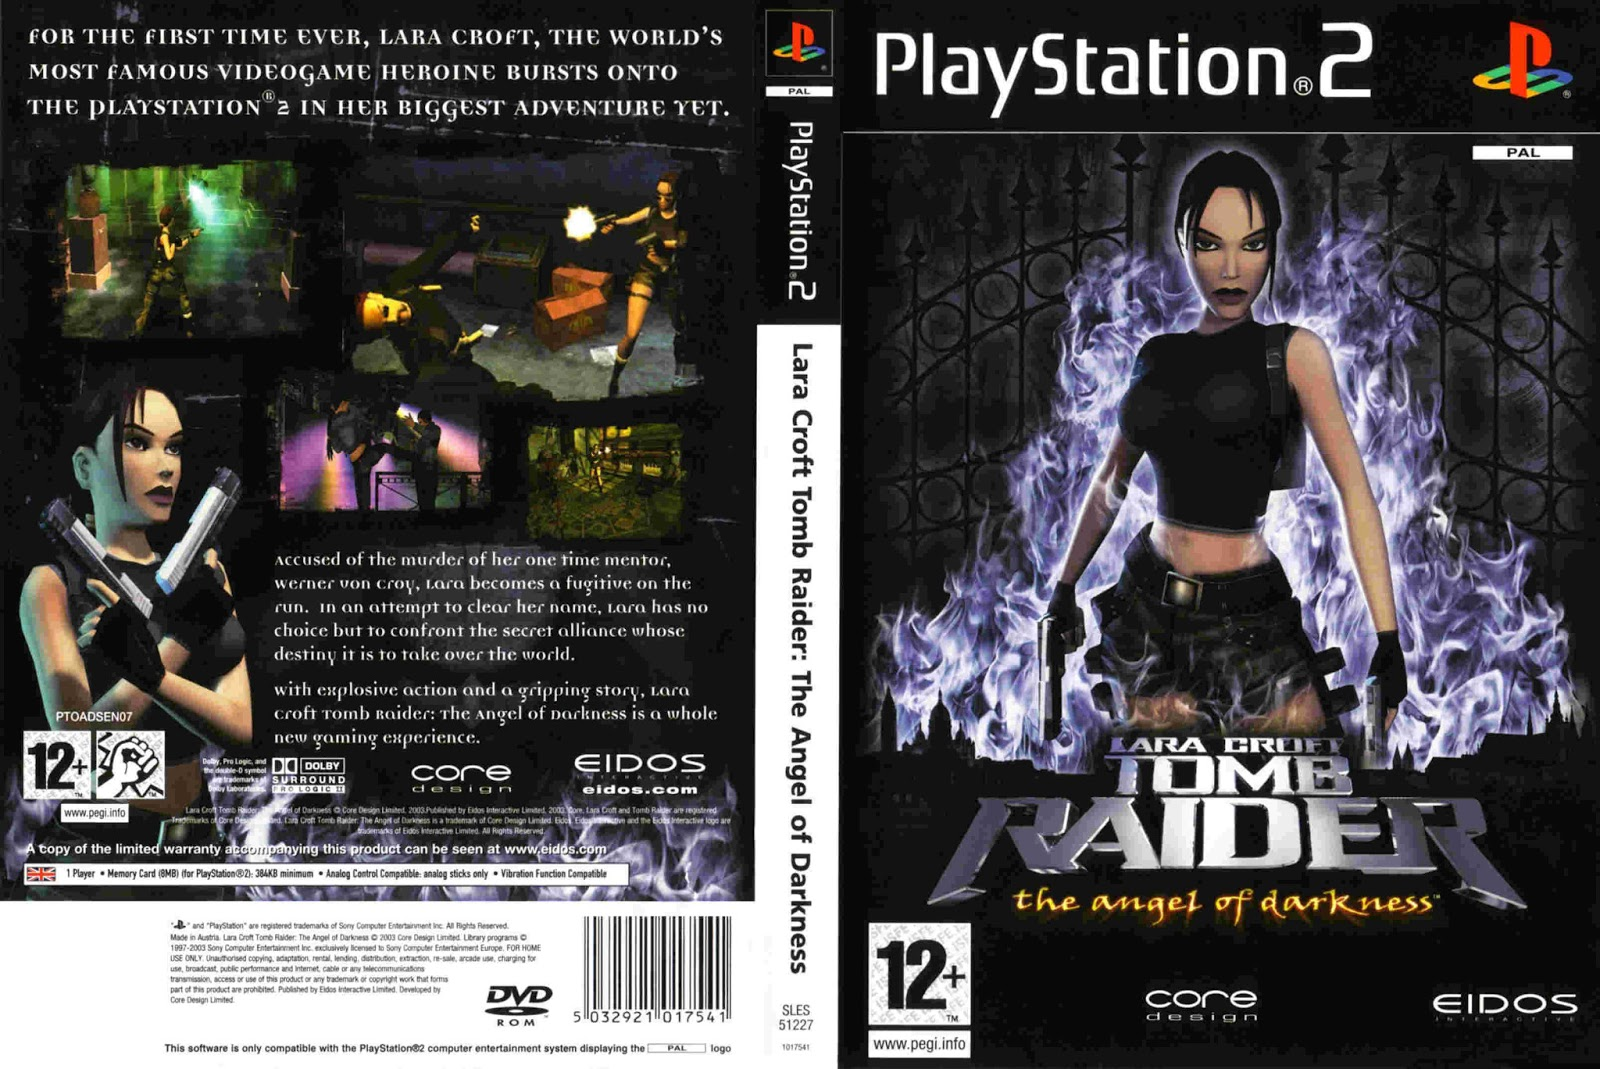 Tomb raider angel of darkness nude patch hentai photos